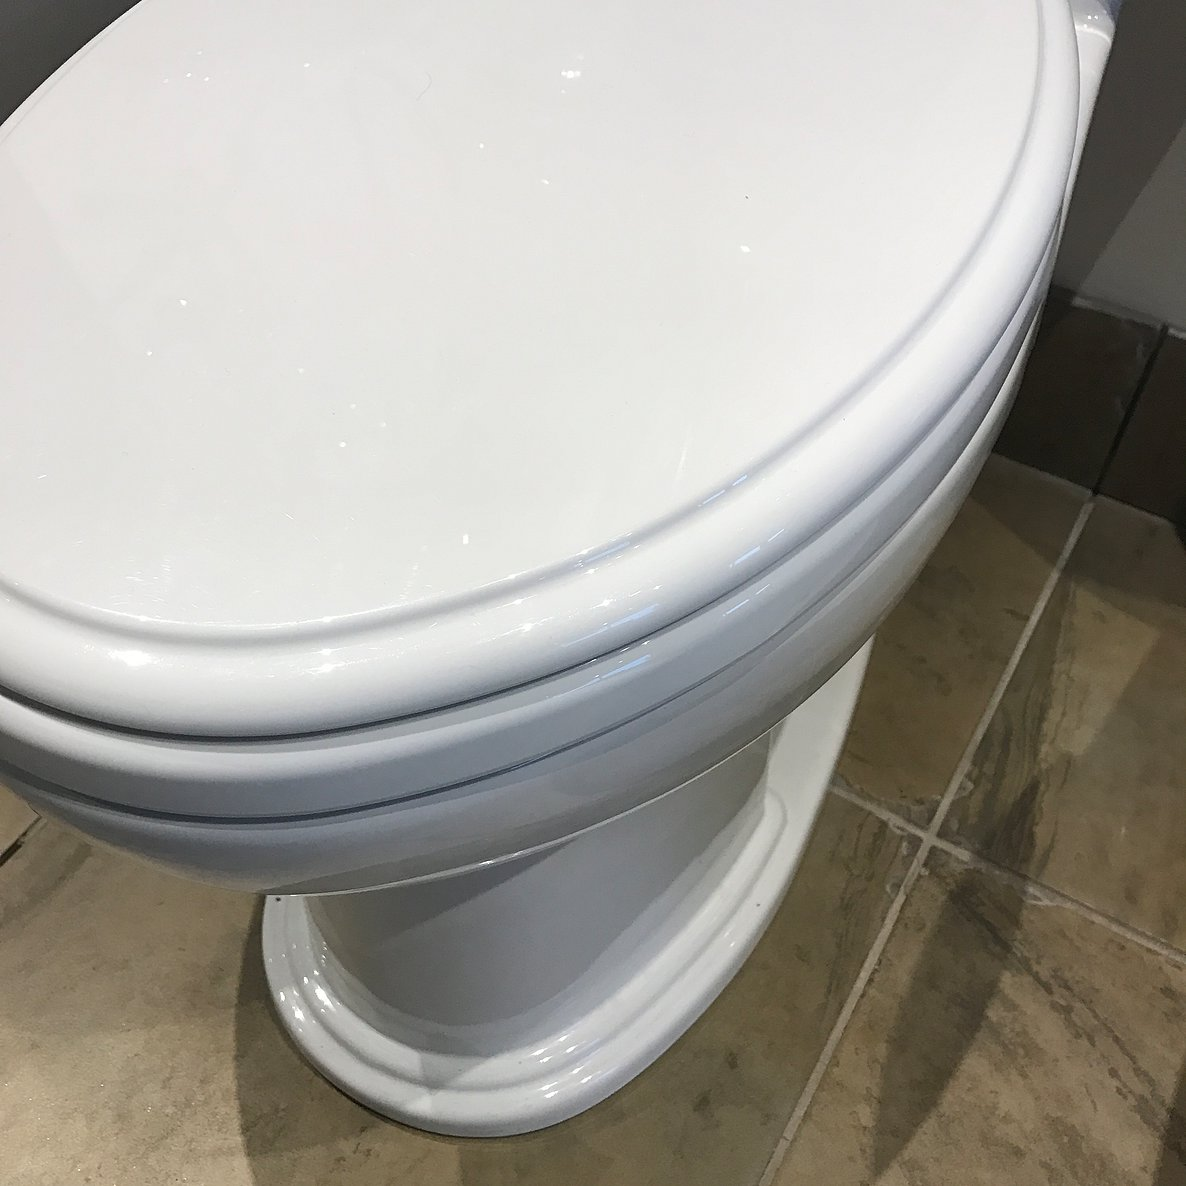 Toto Toilet | Toto Washlet | Toto Aquia Wall Hung Toilet Review